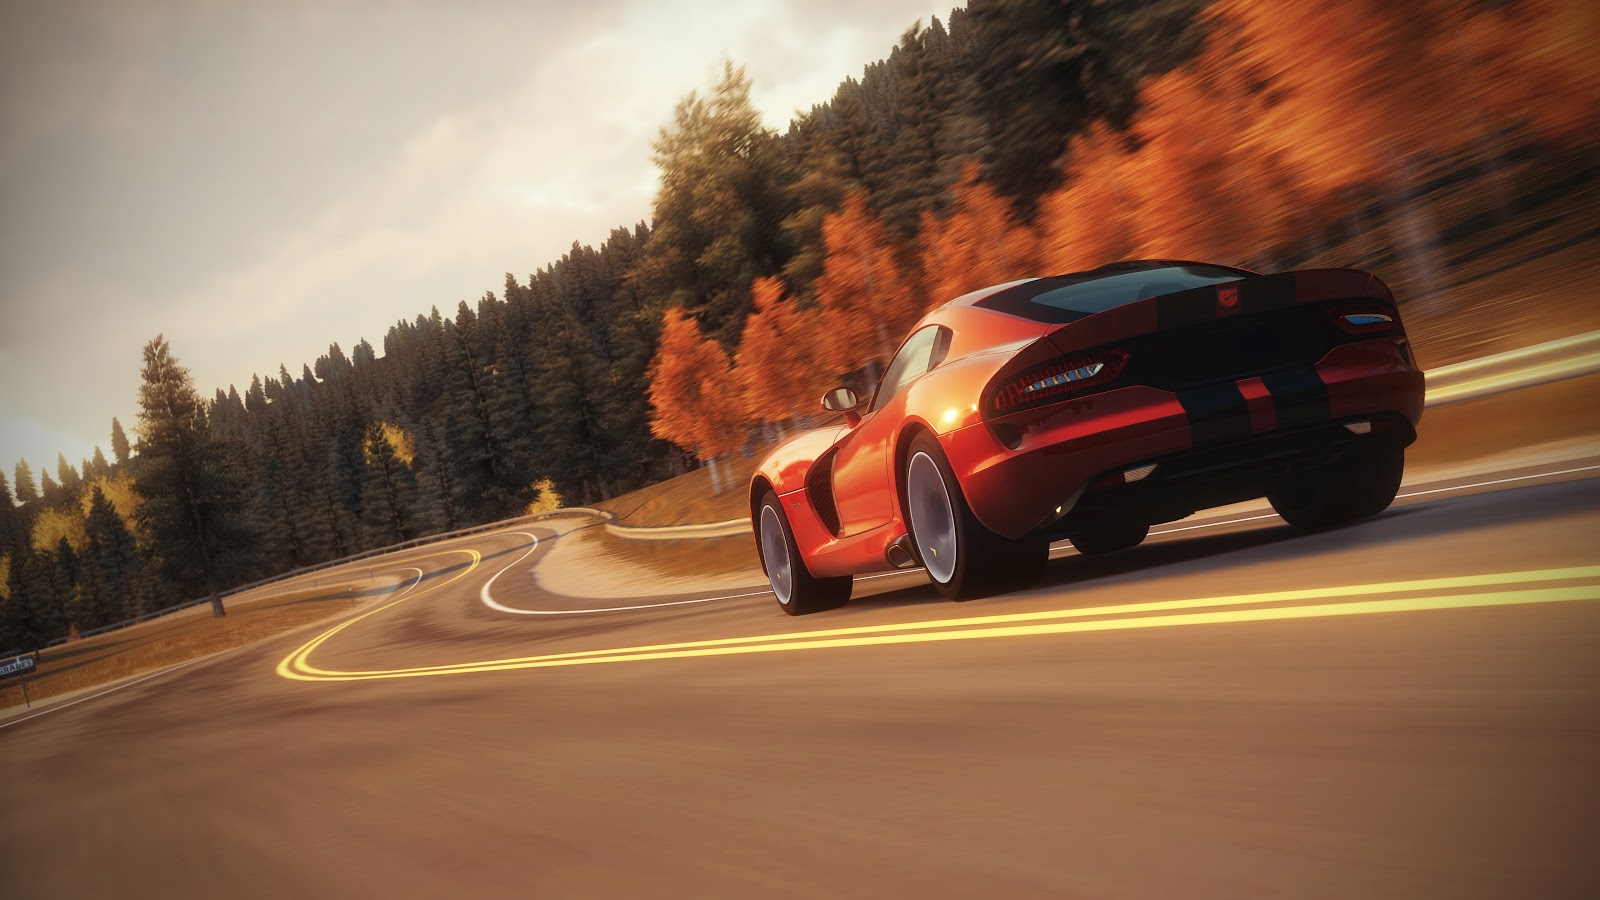 Forza Horizon HD & Widescreen Wallpaper 0.231427228796917